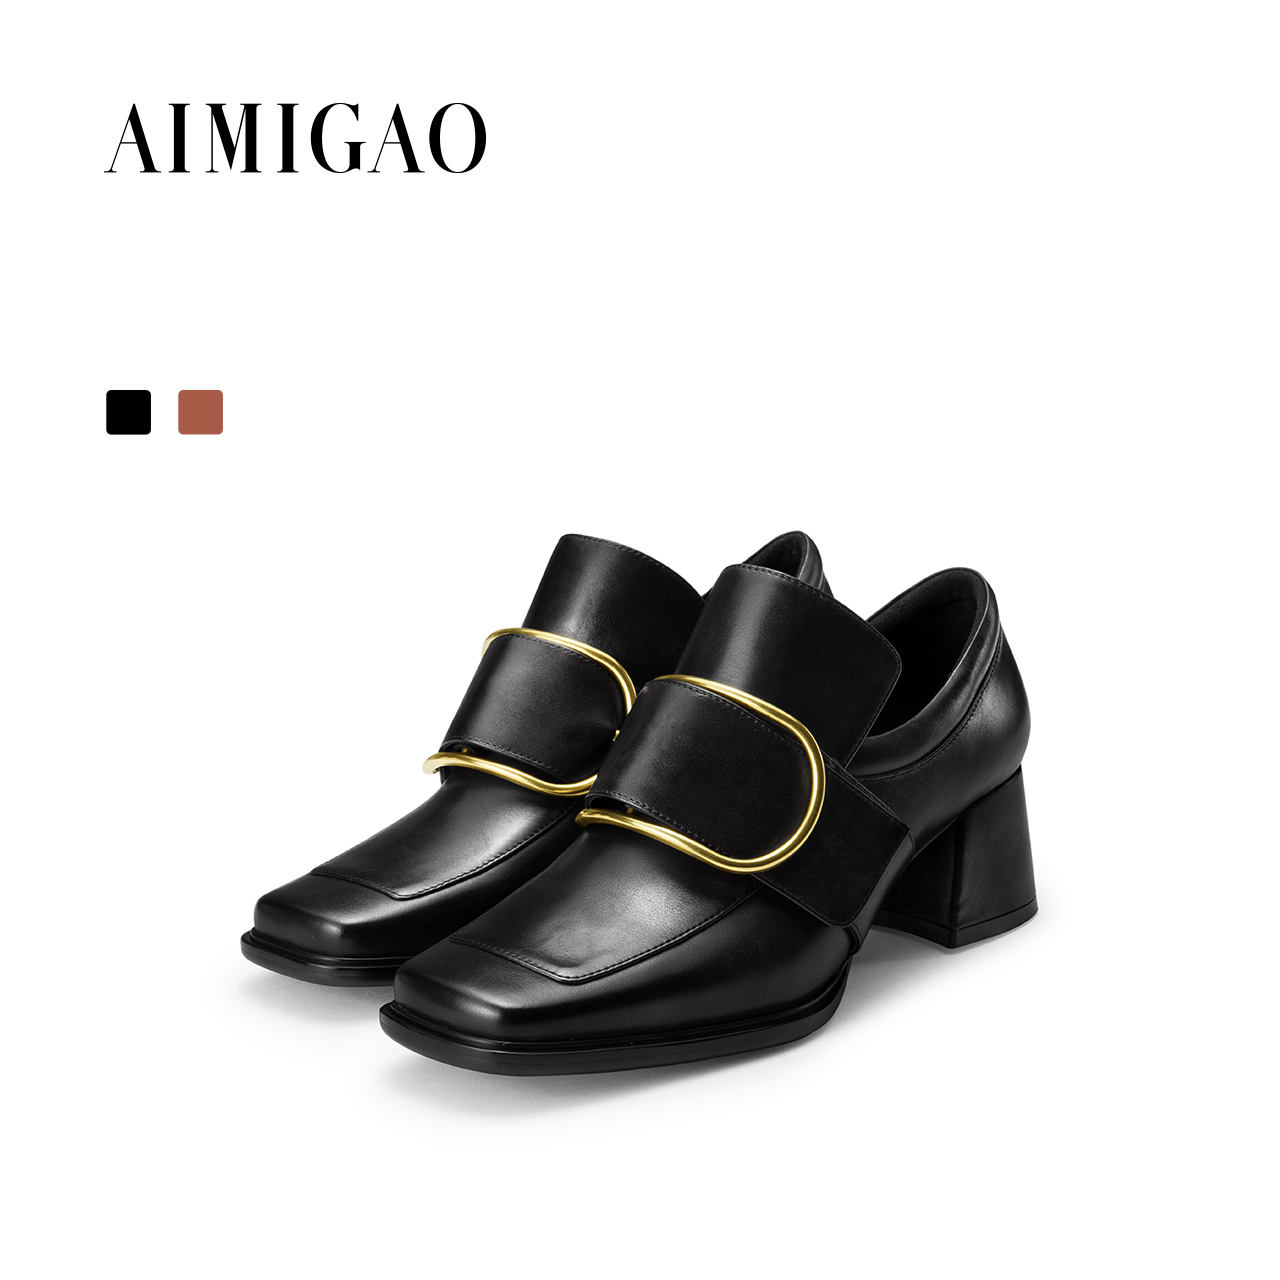 AIMIGAO 2017 cowhide leather square toe fashion Europe and the United States women shoes designer block heel pumps shoes black themostthe latest fashion and luxury night club in europe and the united states the high shoe women s shoes the high shoes